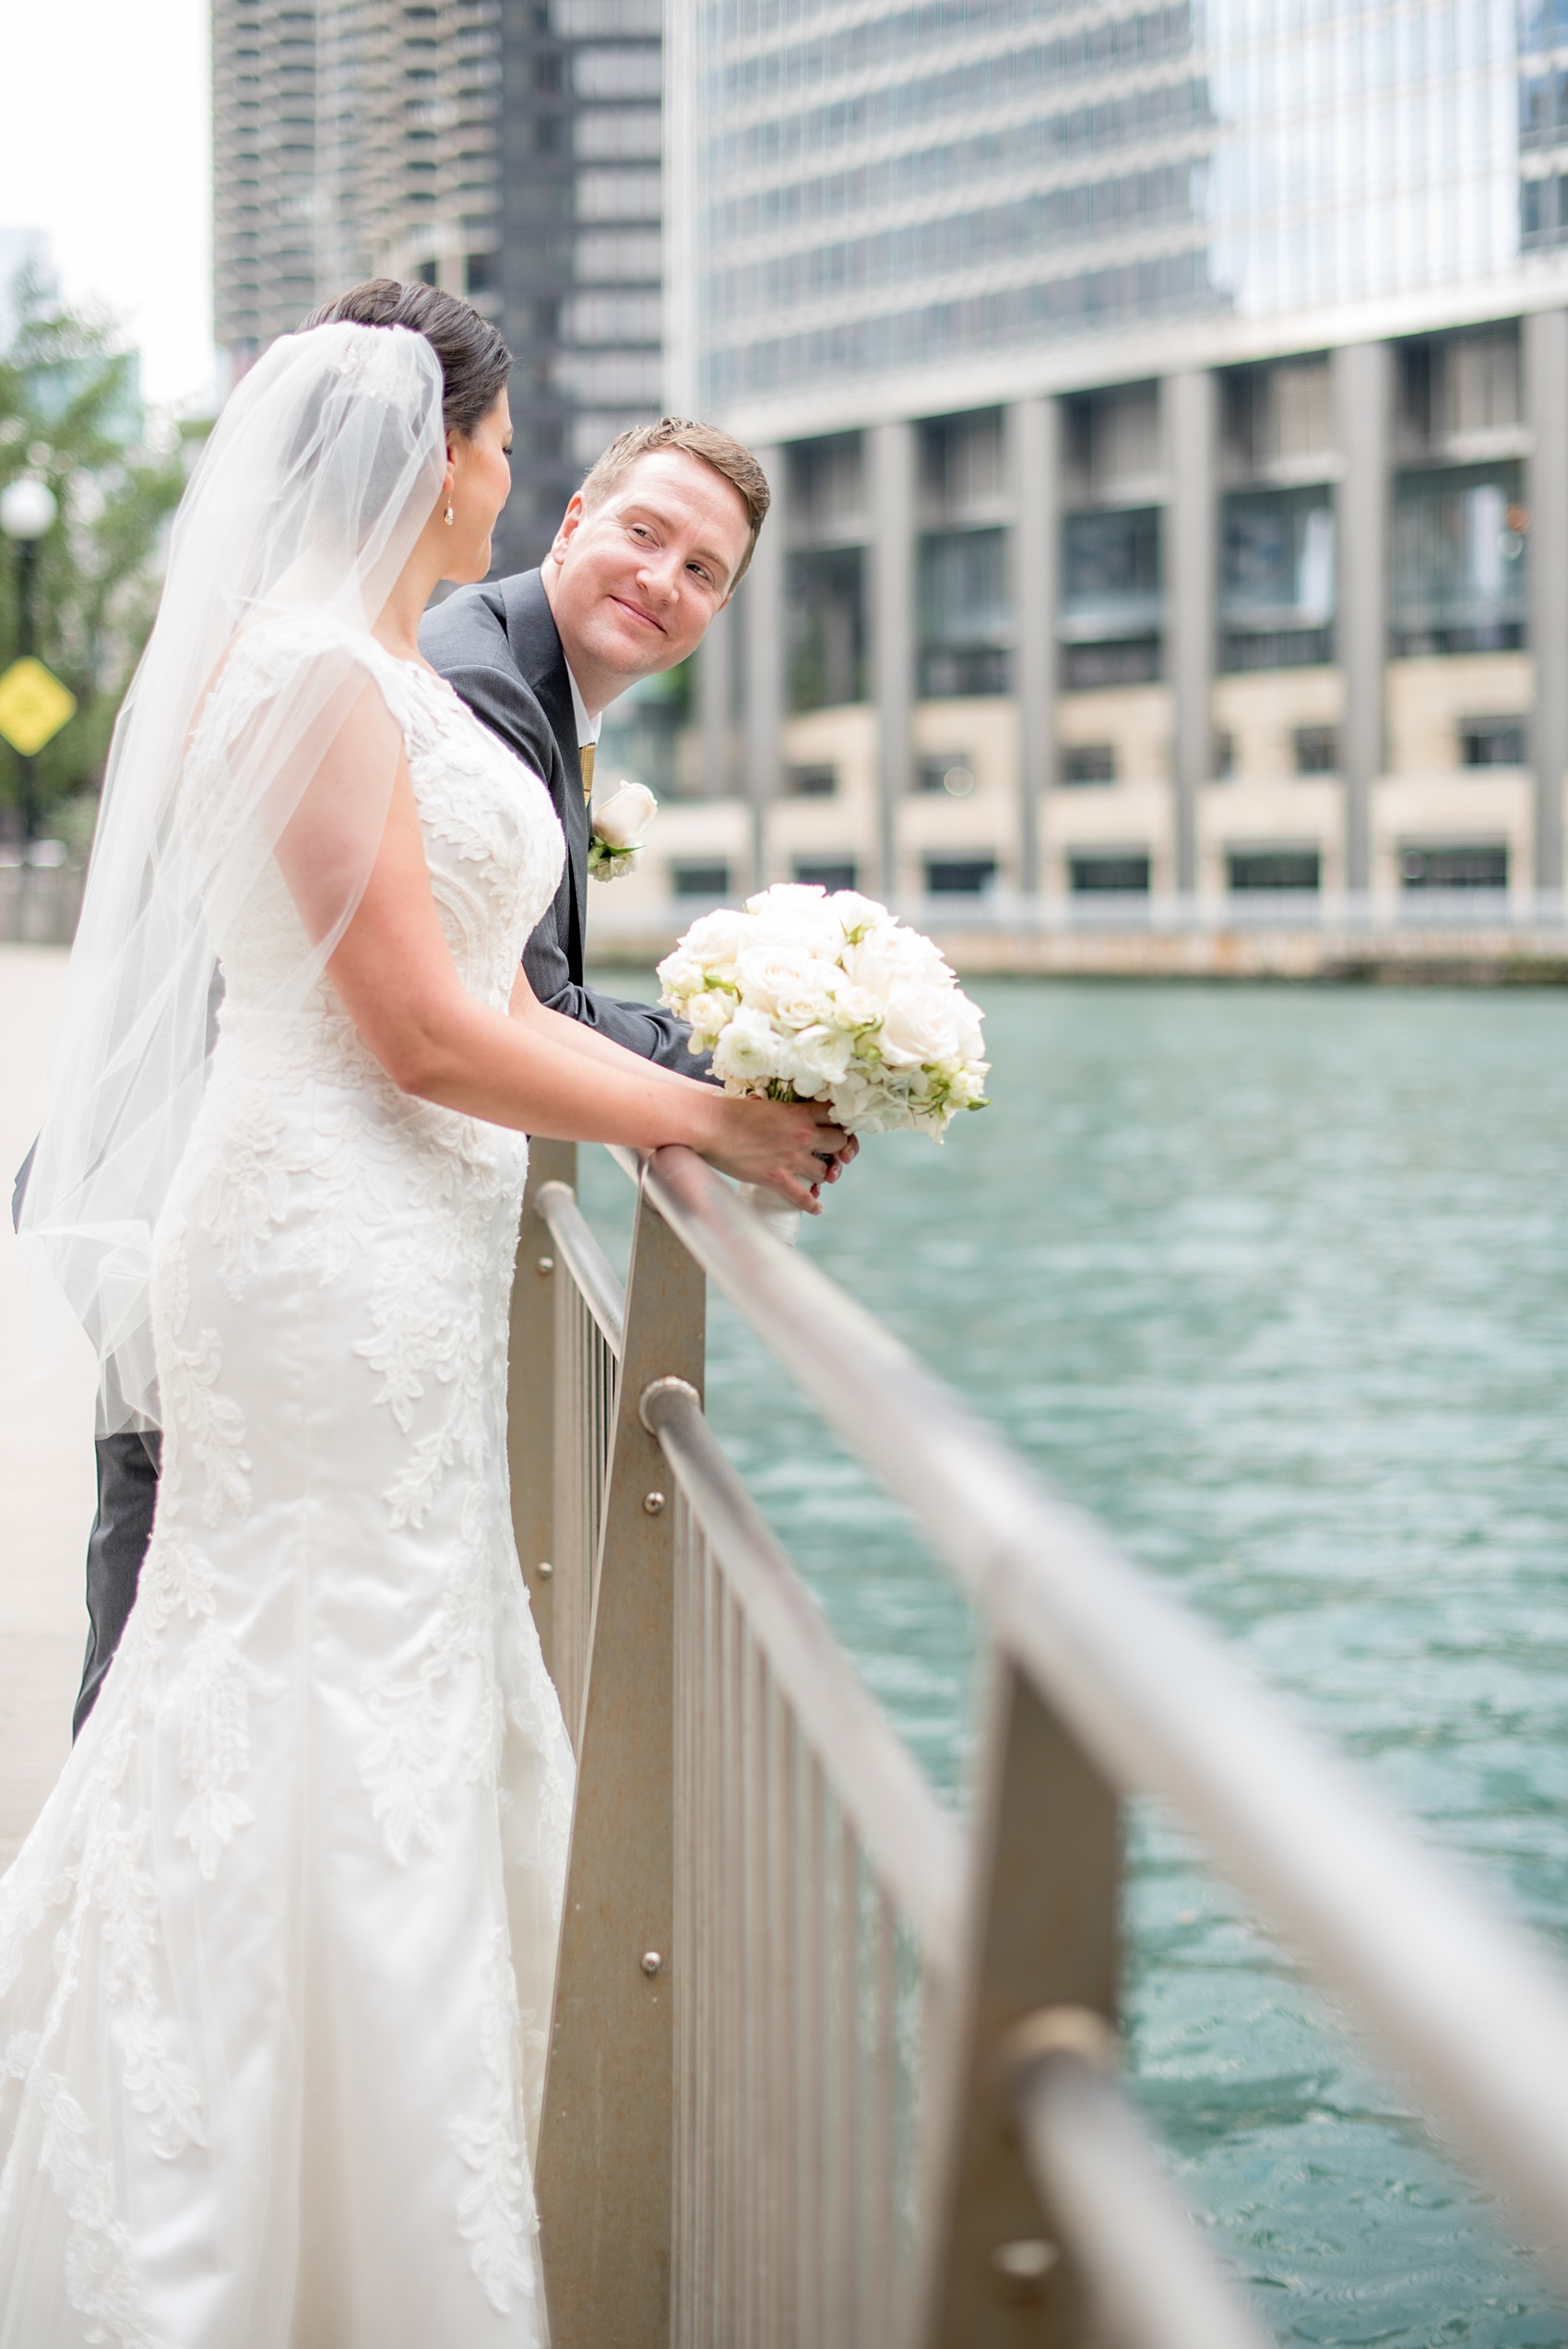 Downtown Chicago Wedding Photos at The Rookery • Shawn + Mike ...